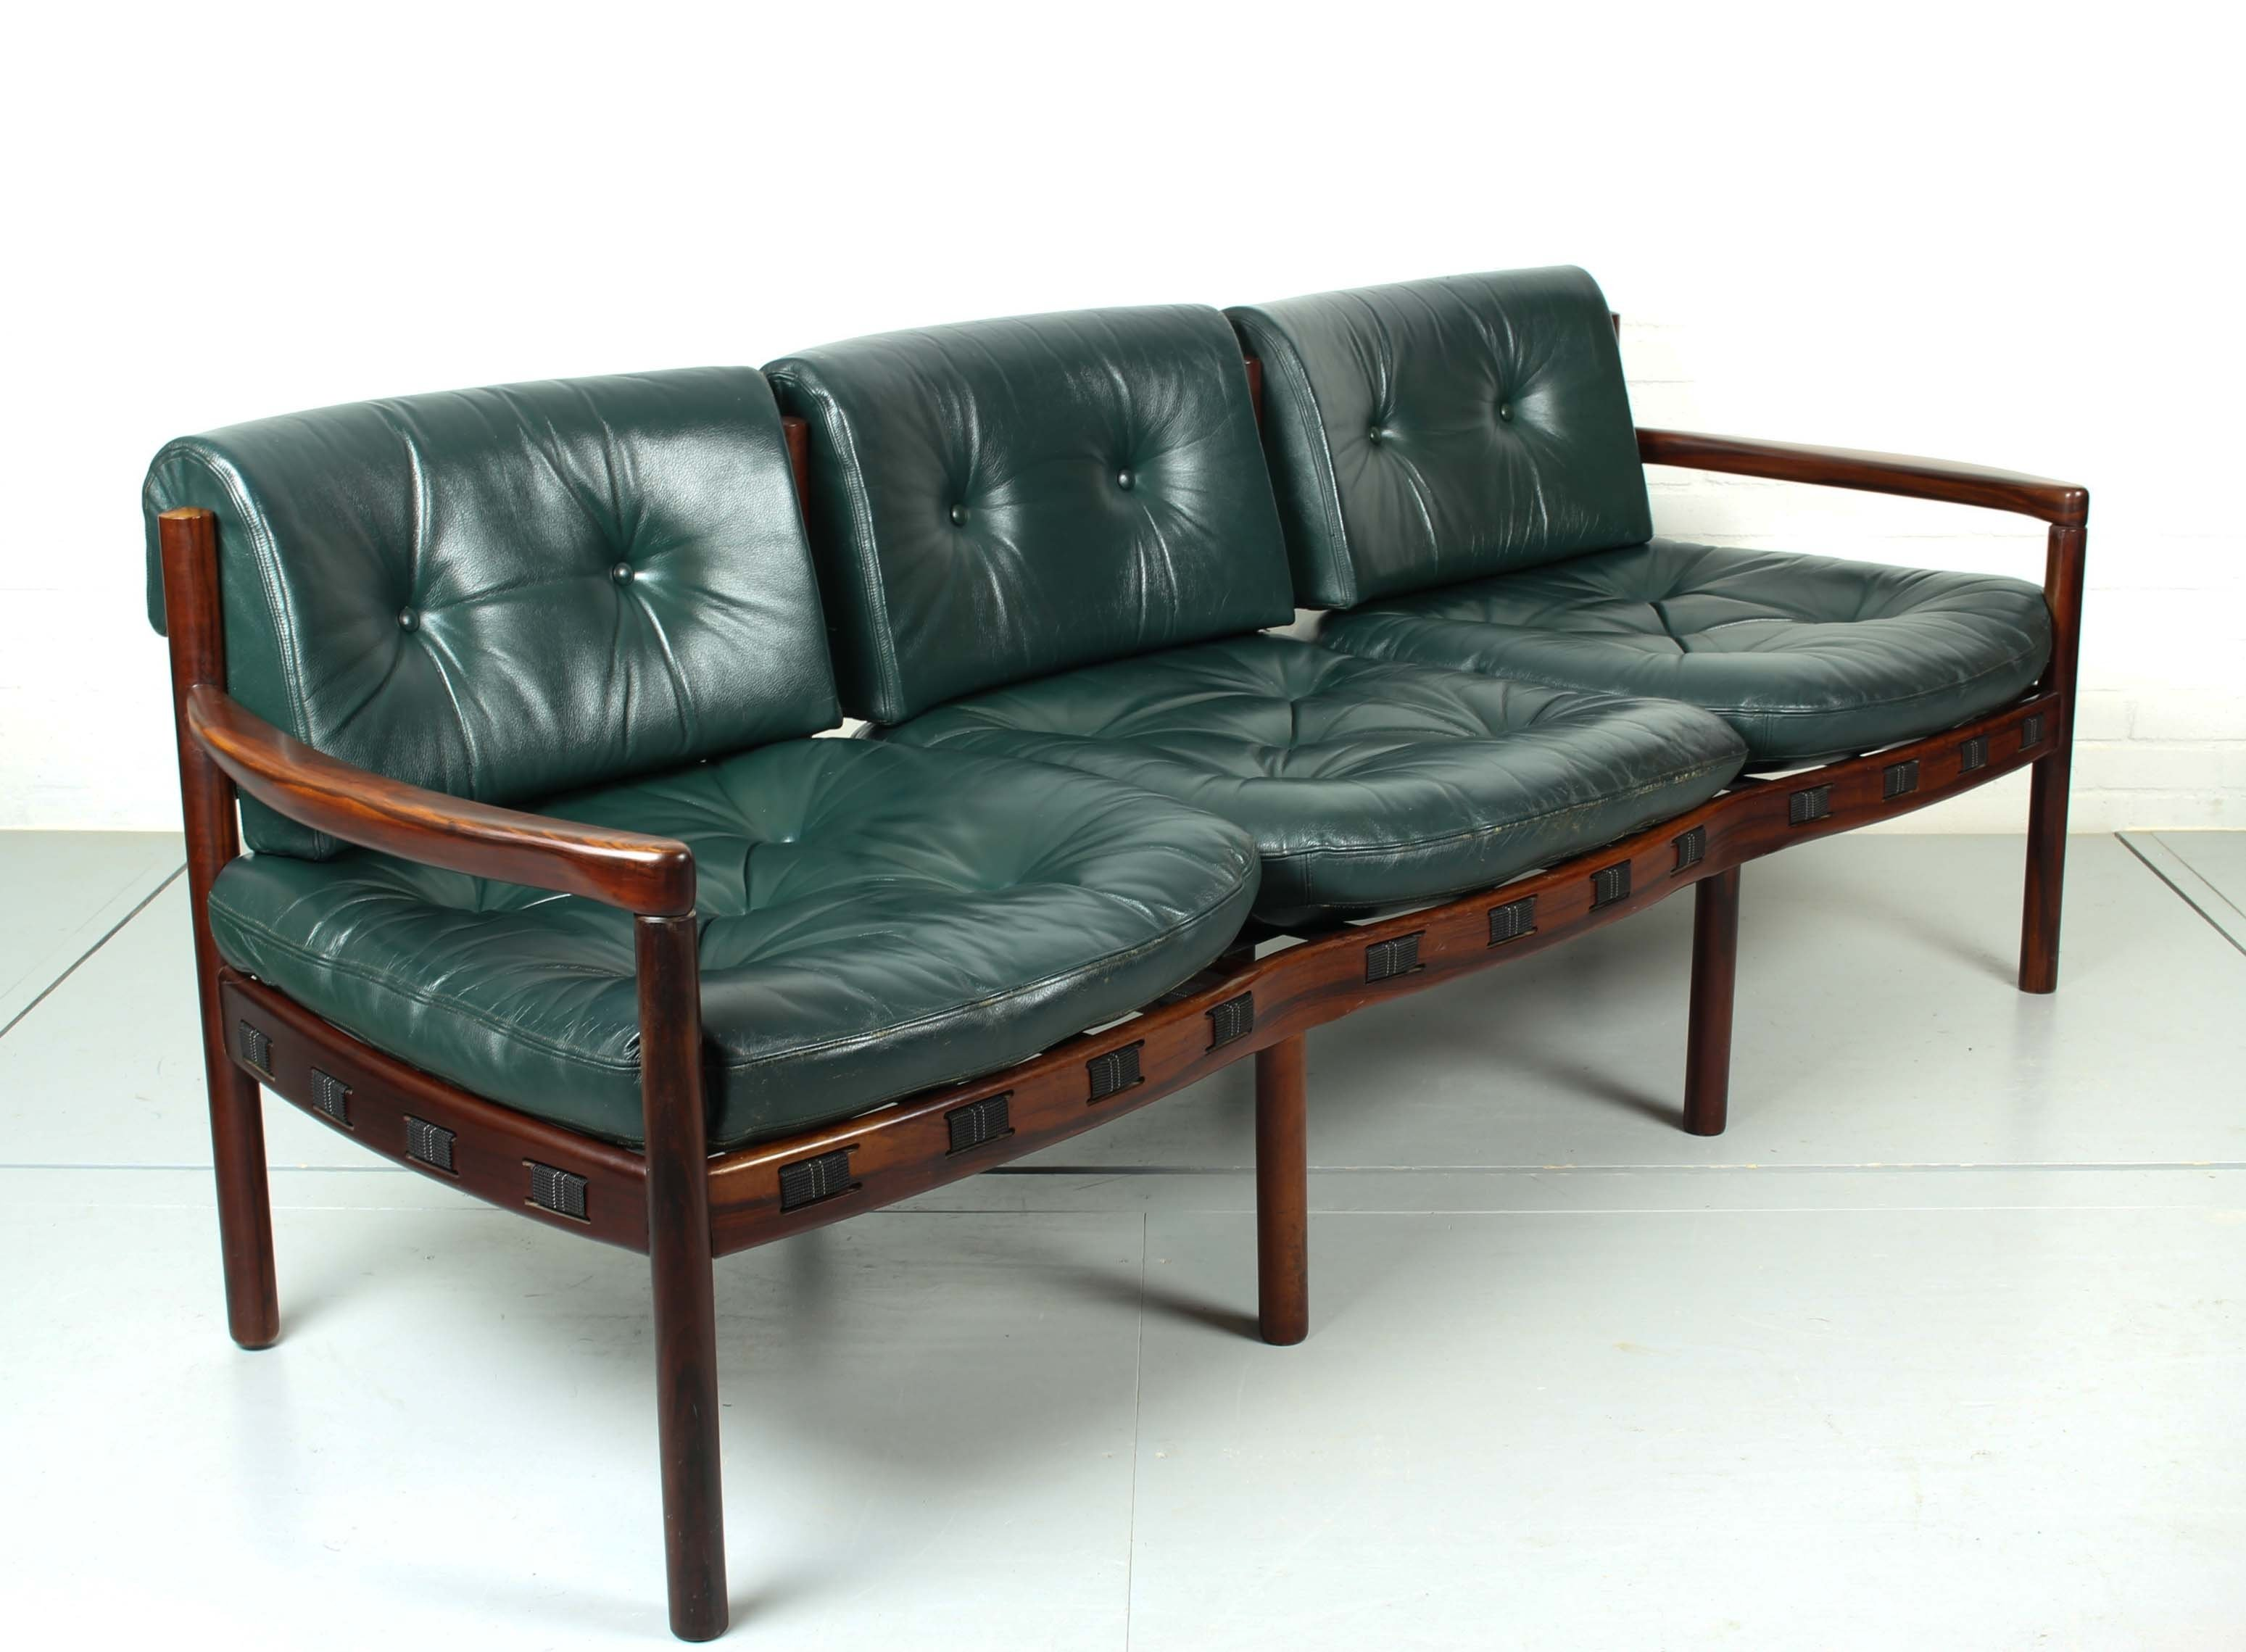 Three Seat Rosewood U0026 Green Leather Sofa By Arne Norell For Coja, 1960s